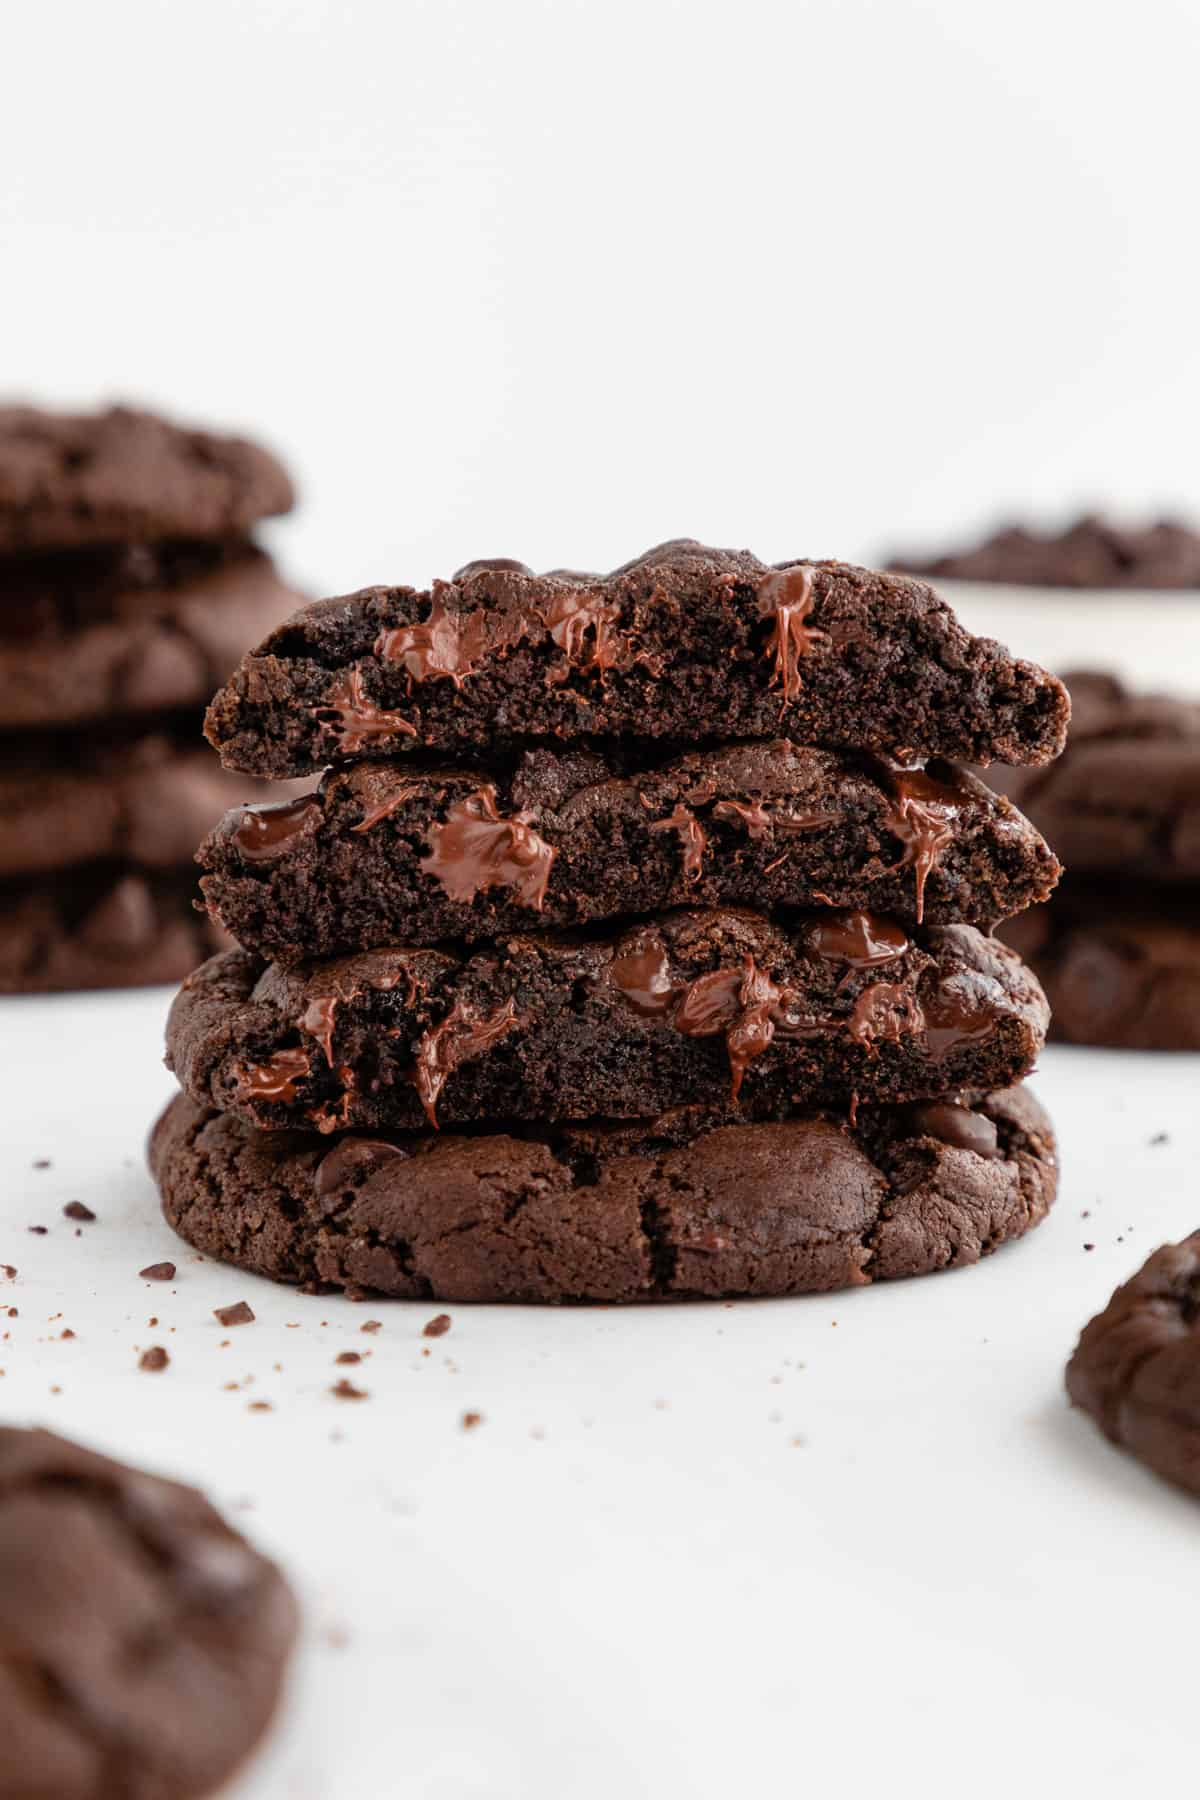 a warm and gooey stack of four vegan double chocolate chip cookies with melted chocolate oozing out of the middle